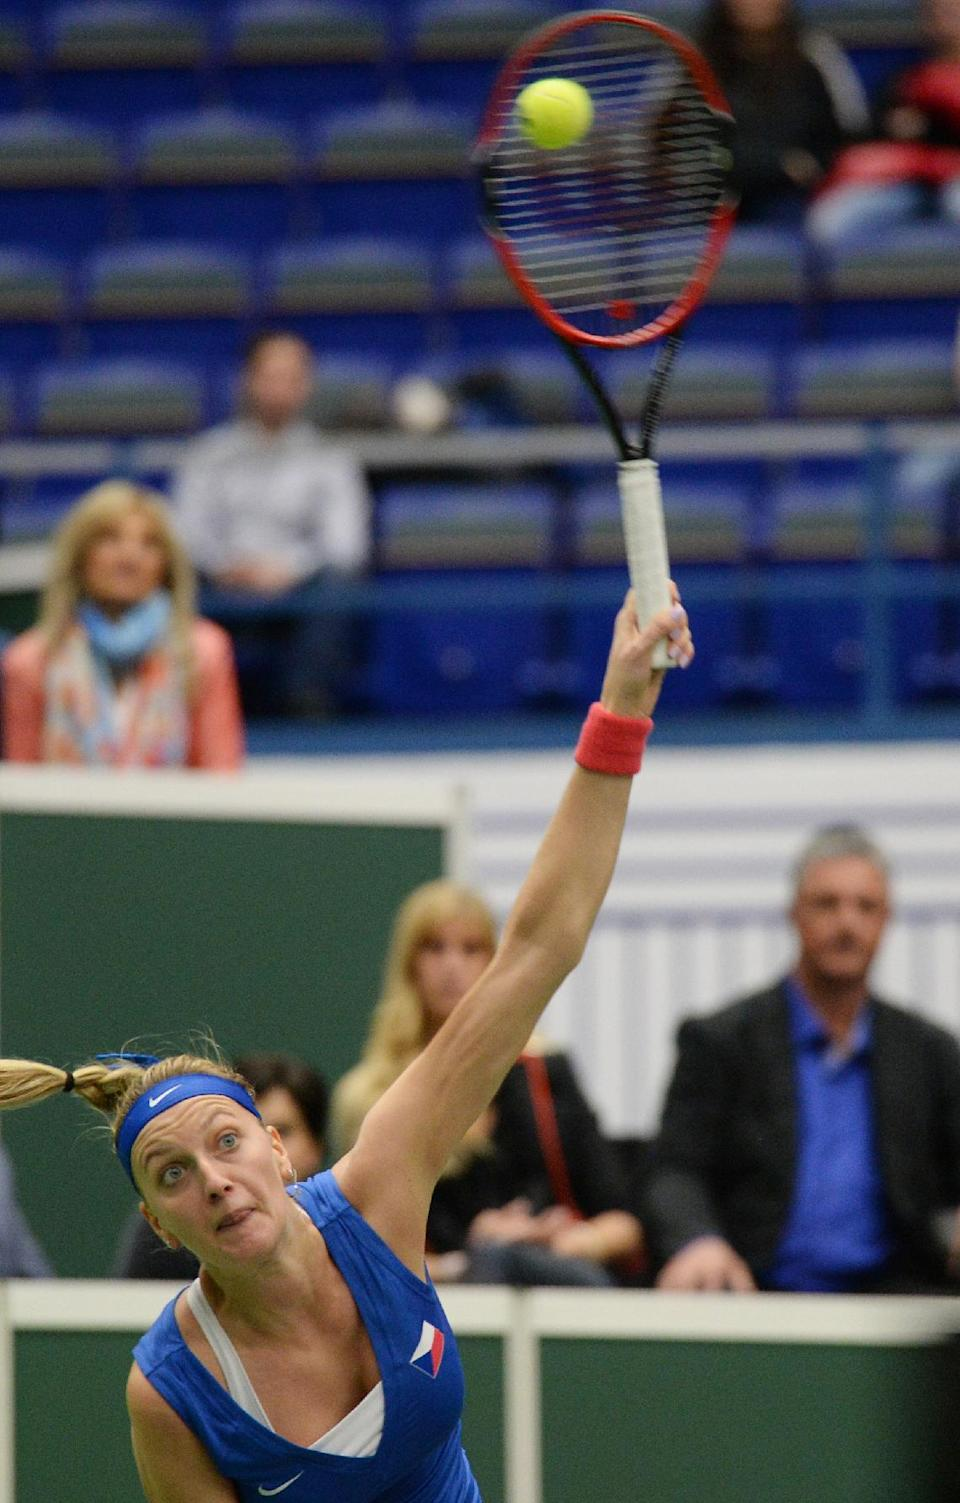 Tennis – Kvitova takes Czechs past France to Fed Cup final